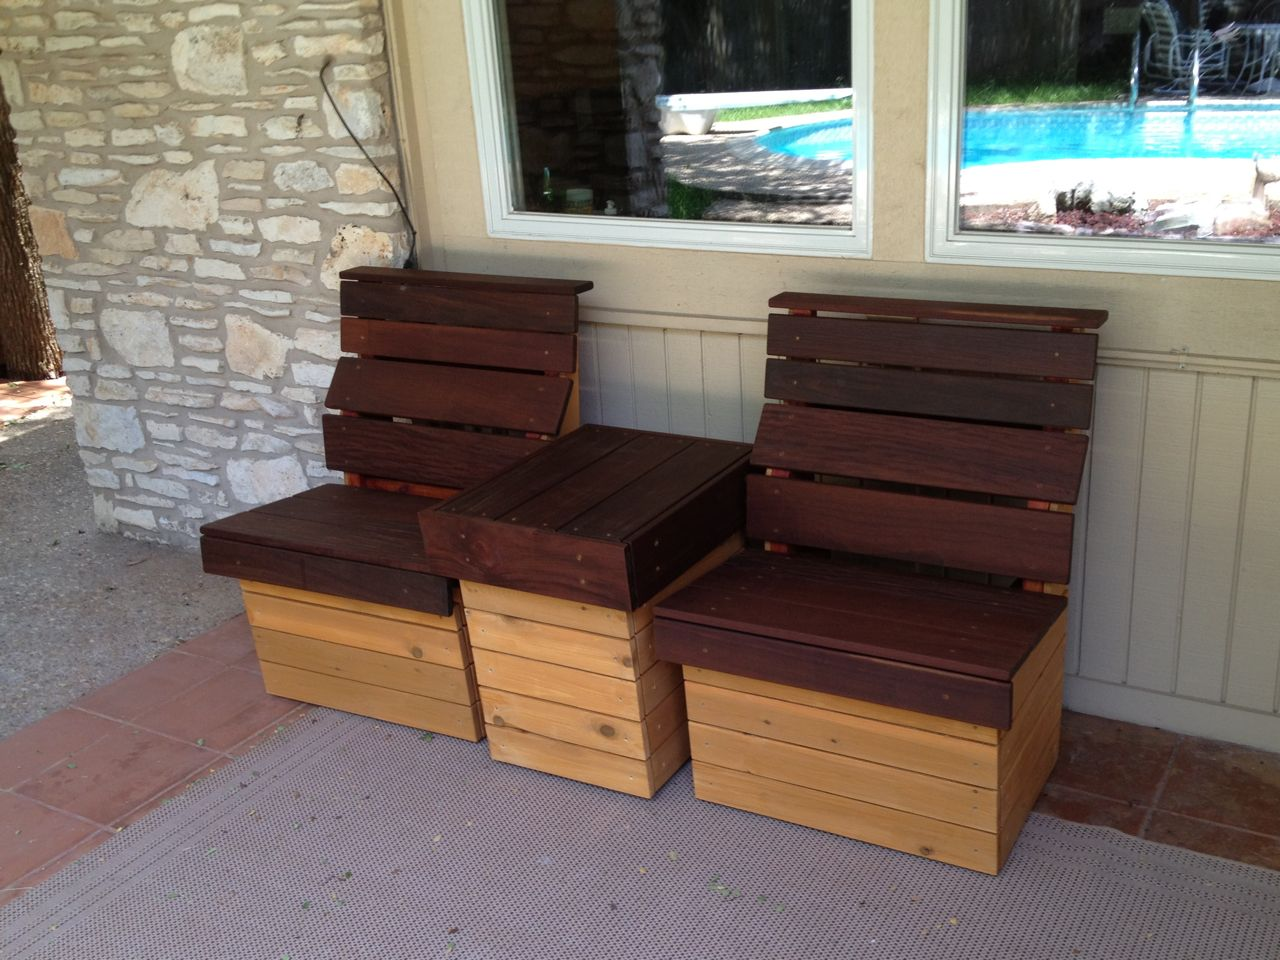 2x4 Furniture You Can Build to Pin on Pinterest